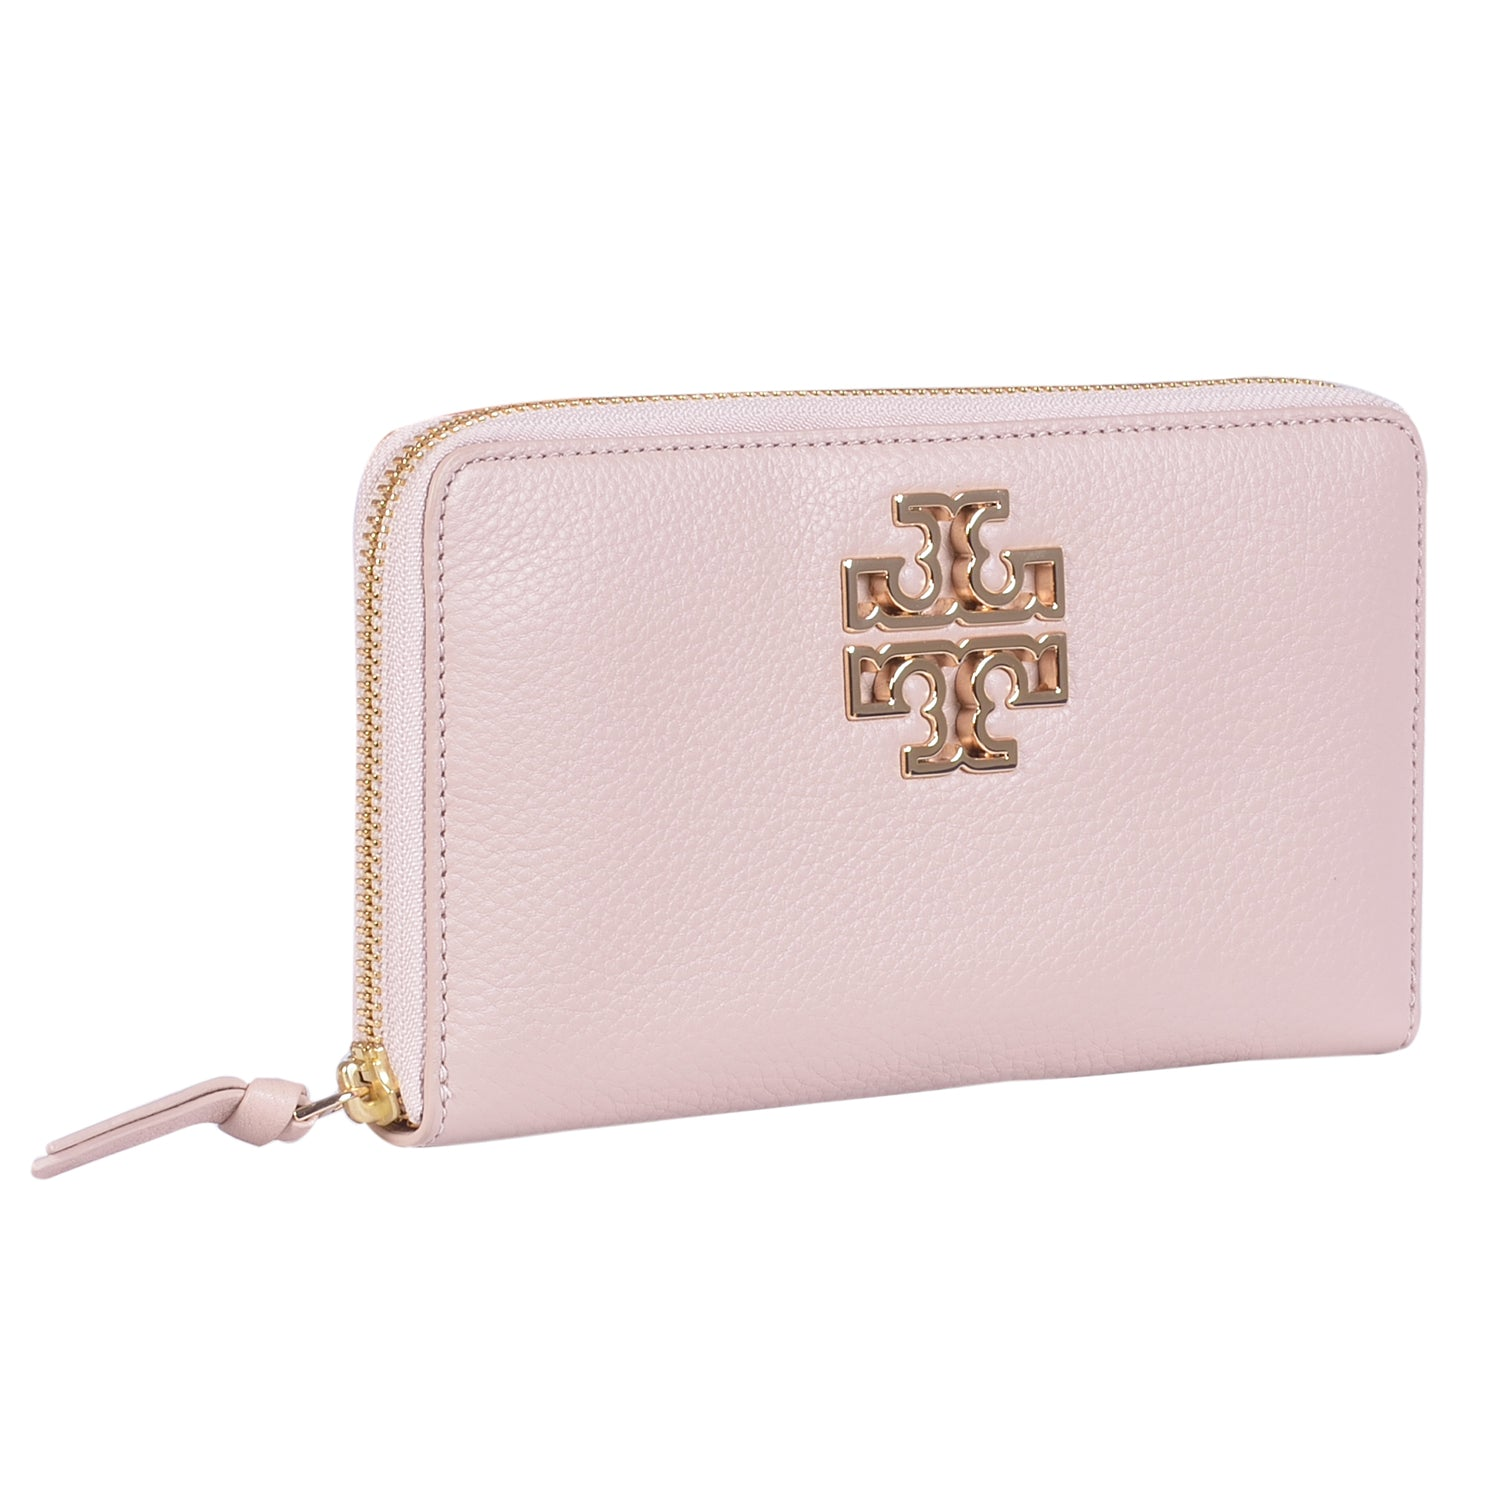 TORY BURCH BONDI BLUE BRITTEN ZIP CONTINENTAL WALLET